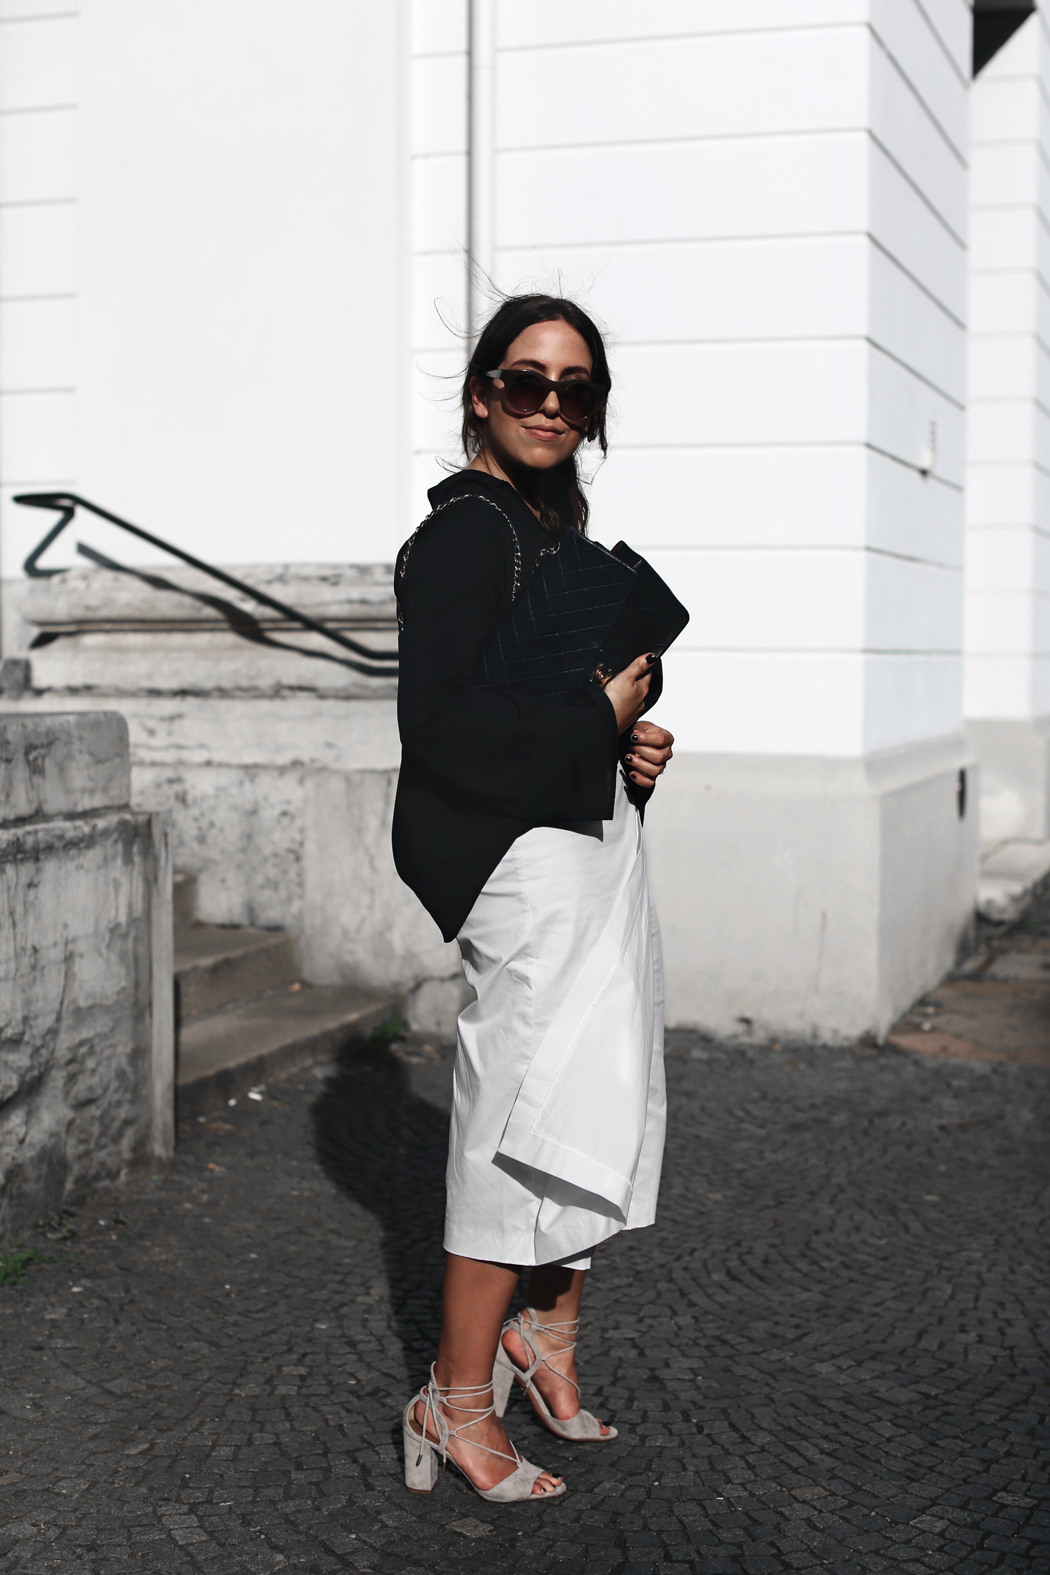 The Dashing Rider White Culotte Chanel Bag Outfit